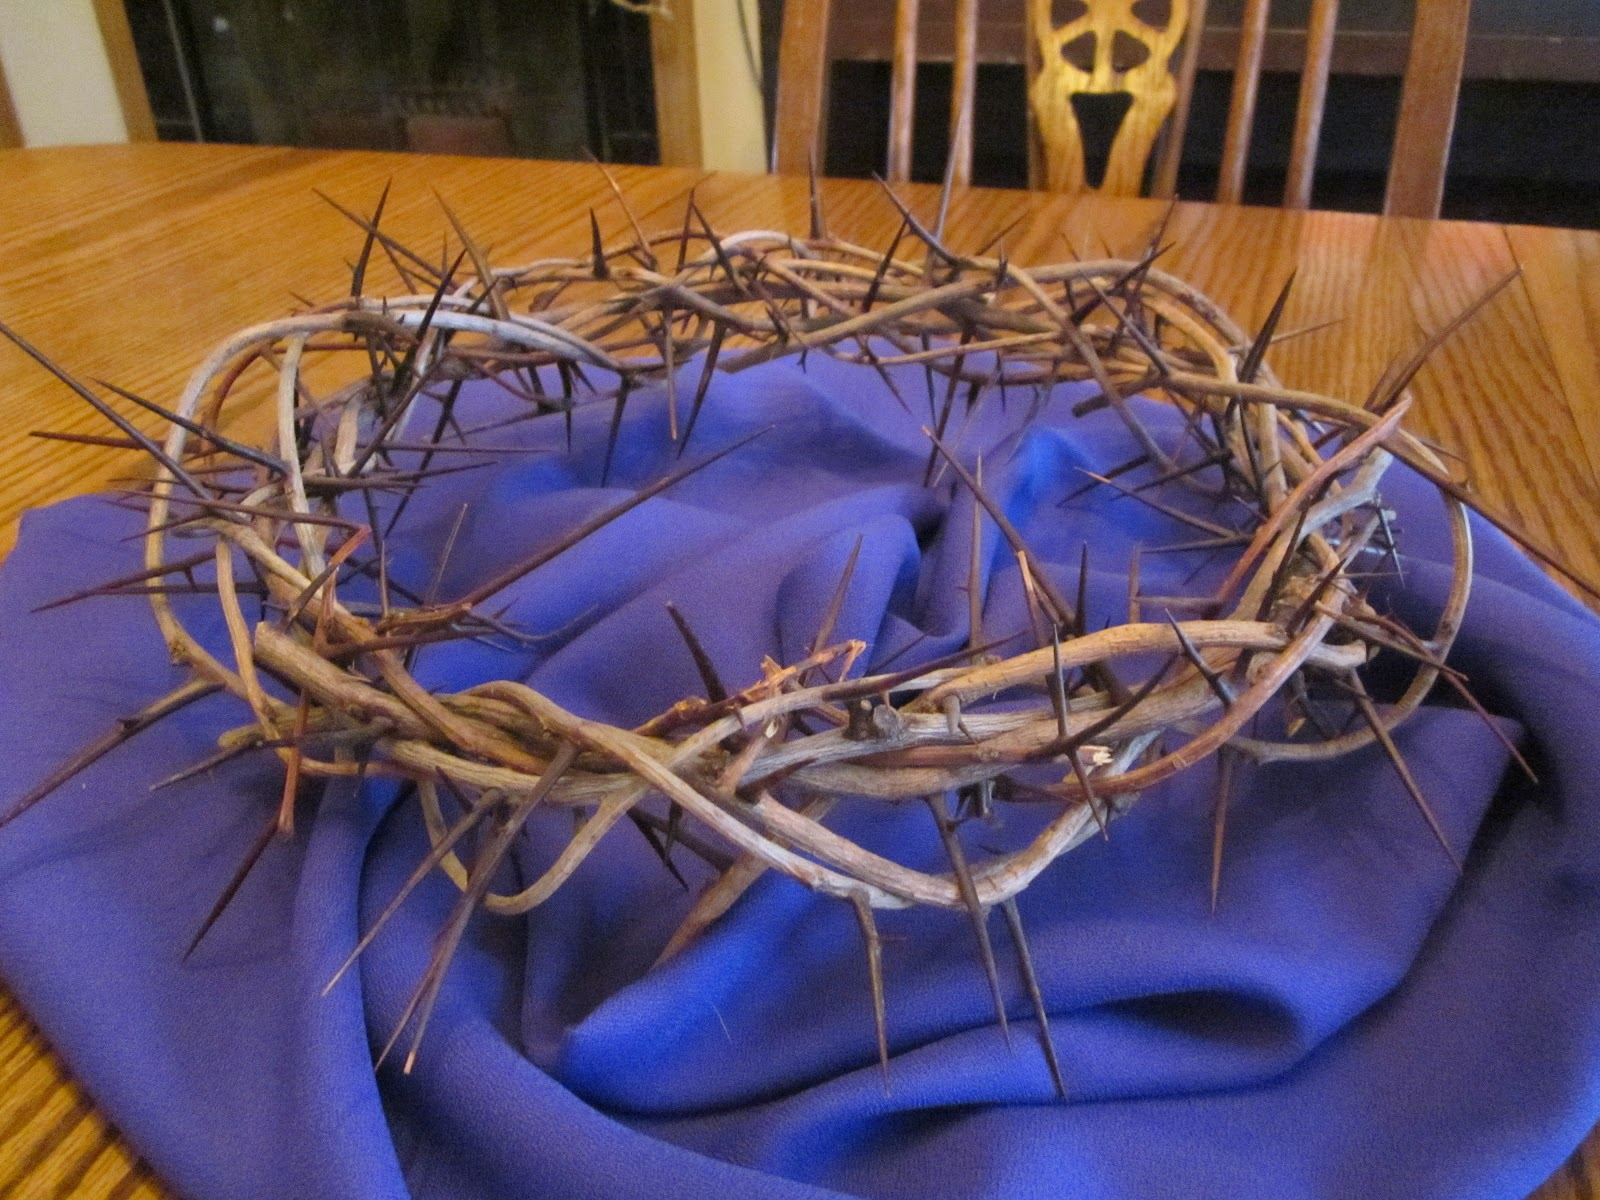 Crown of Thorns....similar to what was placed on the head of Christ Durring his passion.